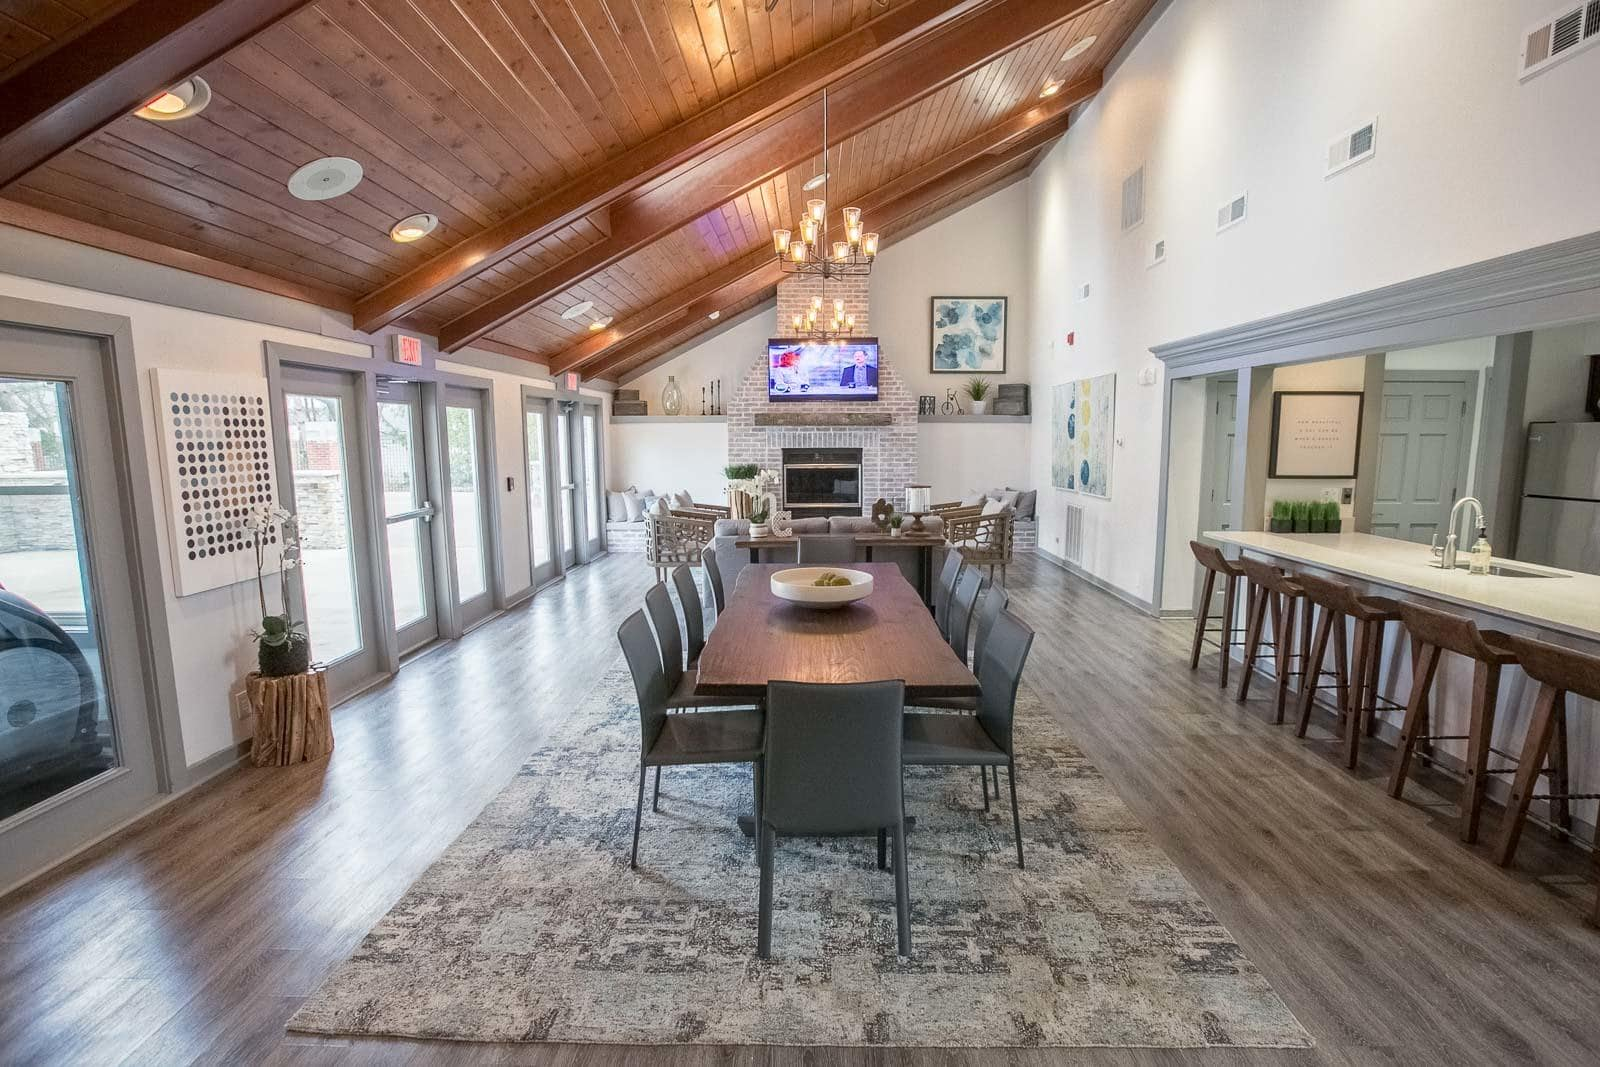 Westlake apartments includes an entertainment space